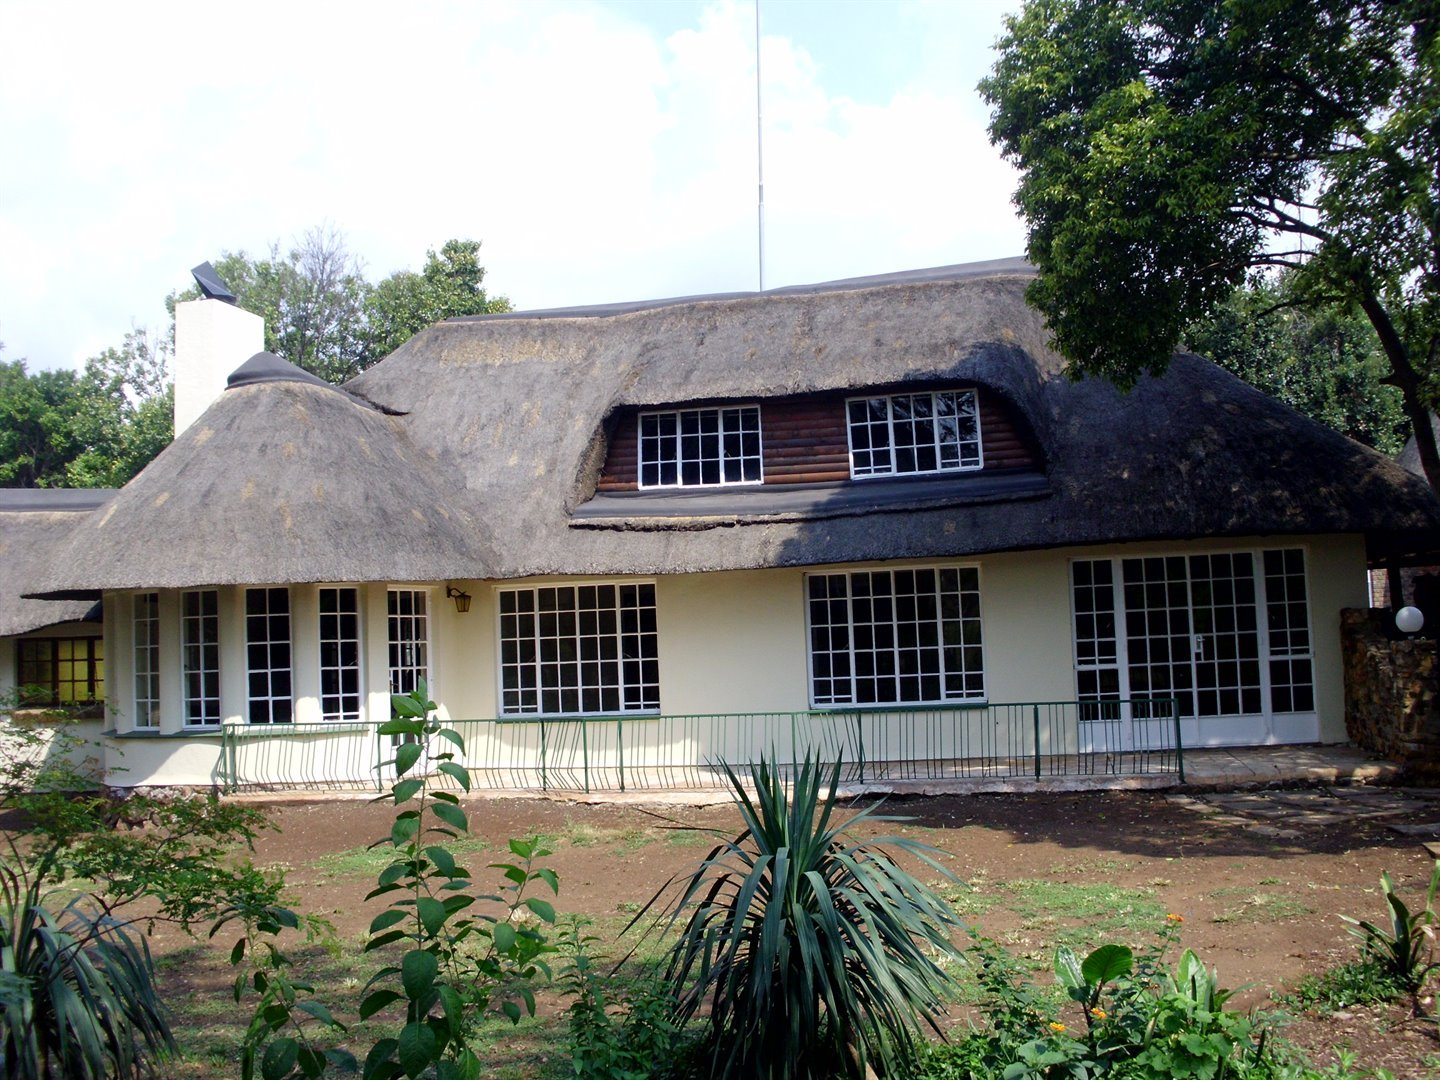 Centurion, Doringkloof Property  | Houses For Sale Doringkloof, Doringkloof, House 4 bedrooms property for sale Price:1,750,000